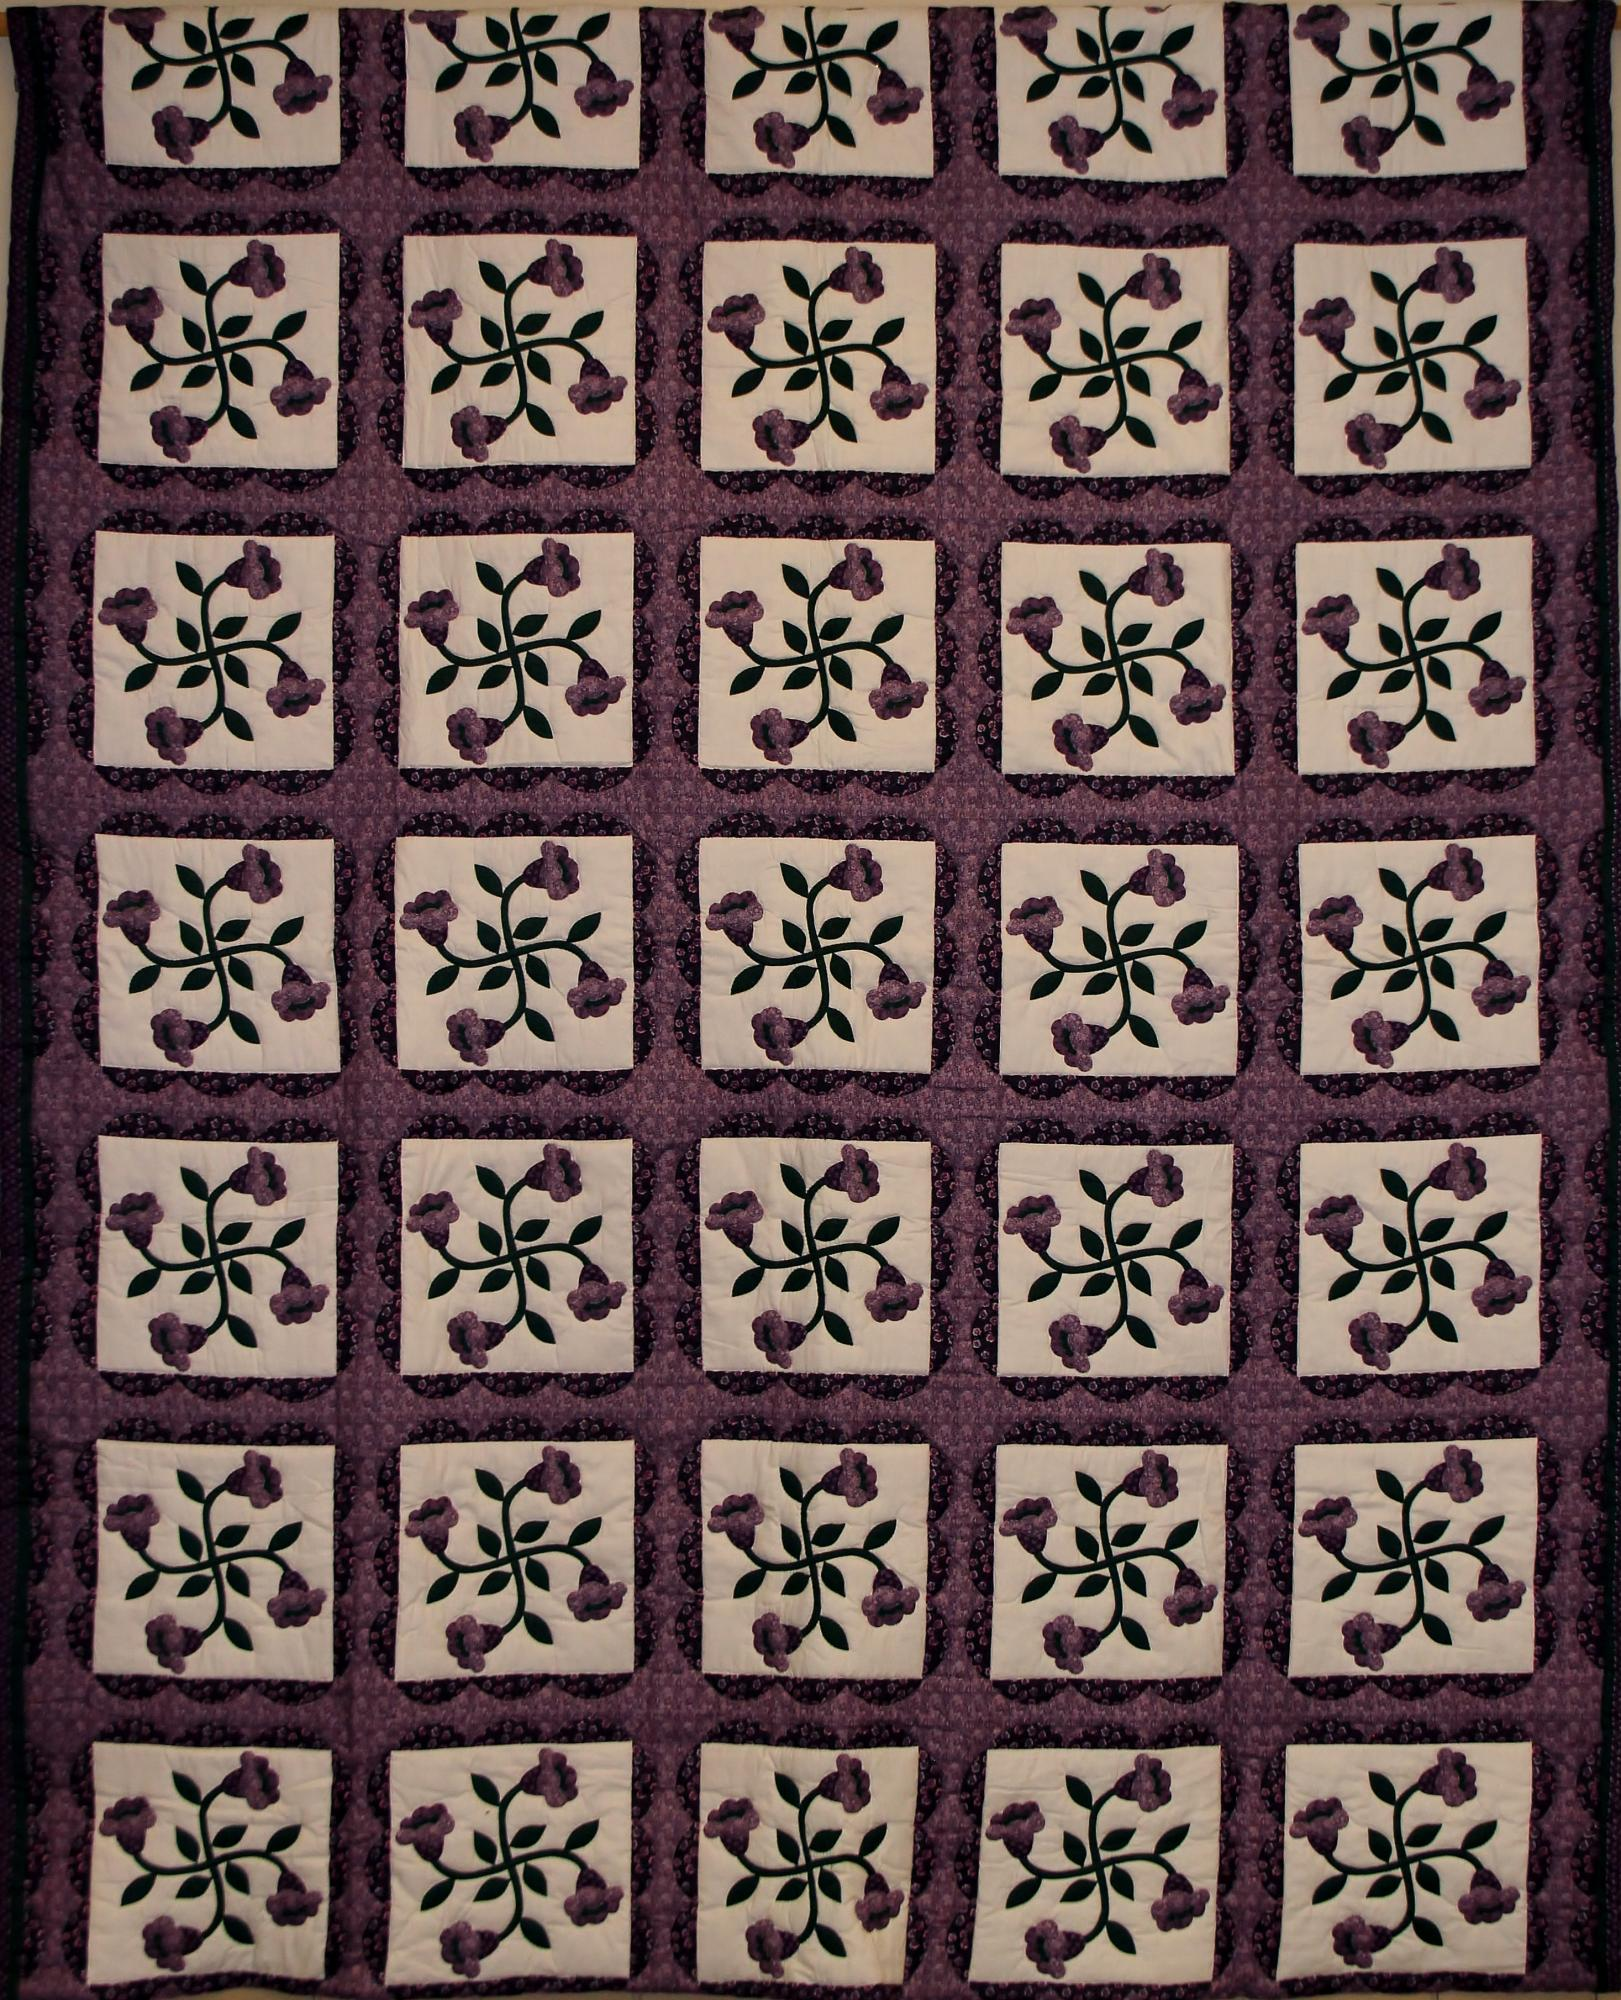 2017_Quilt_Auction_-_Spinning_Petunias.JPG